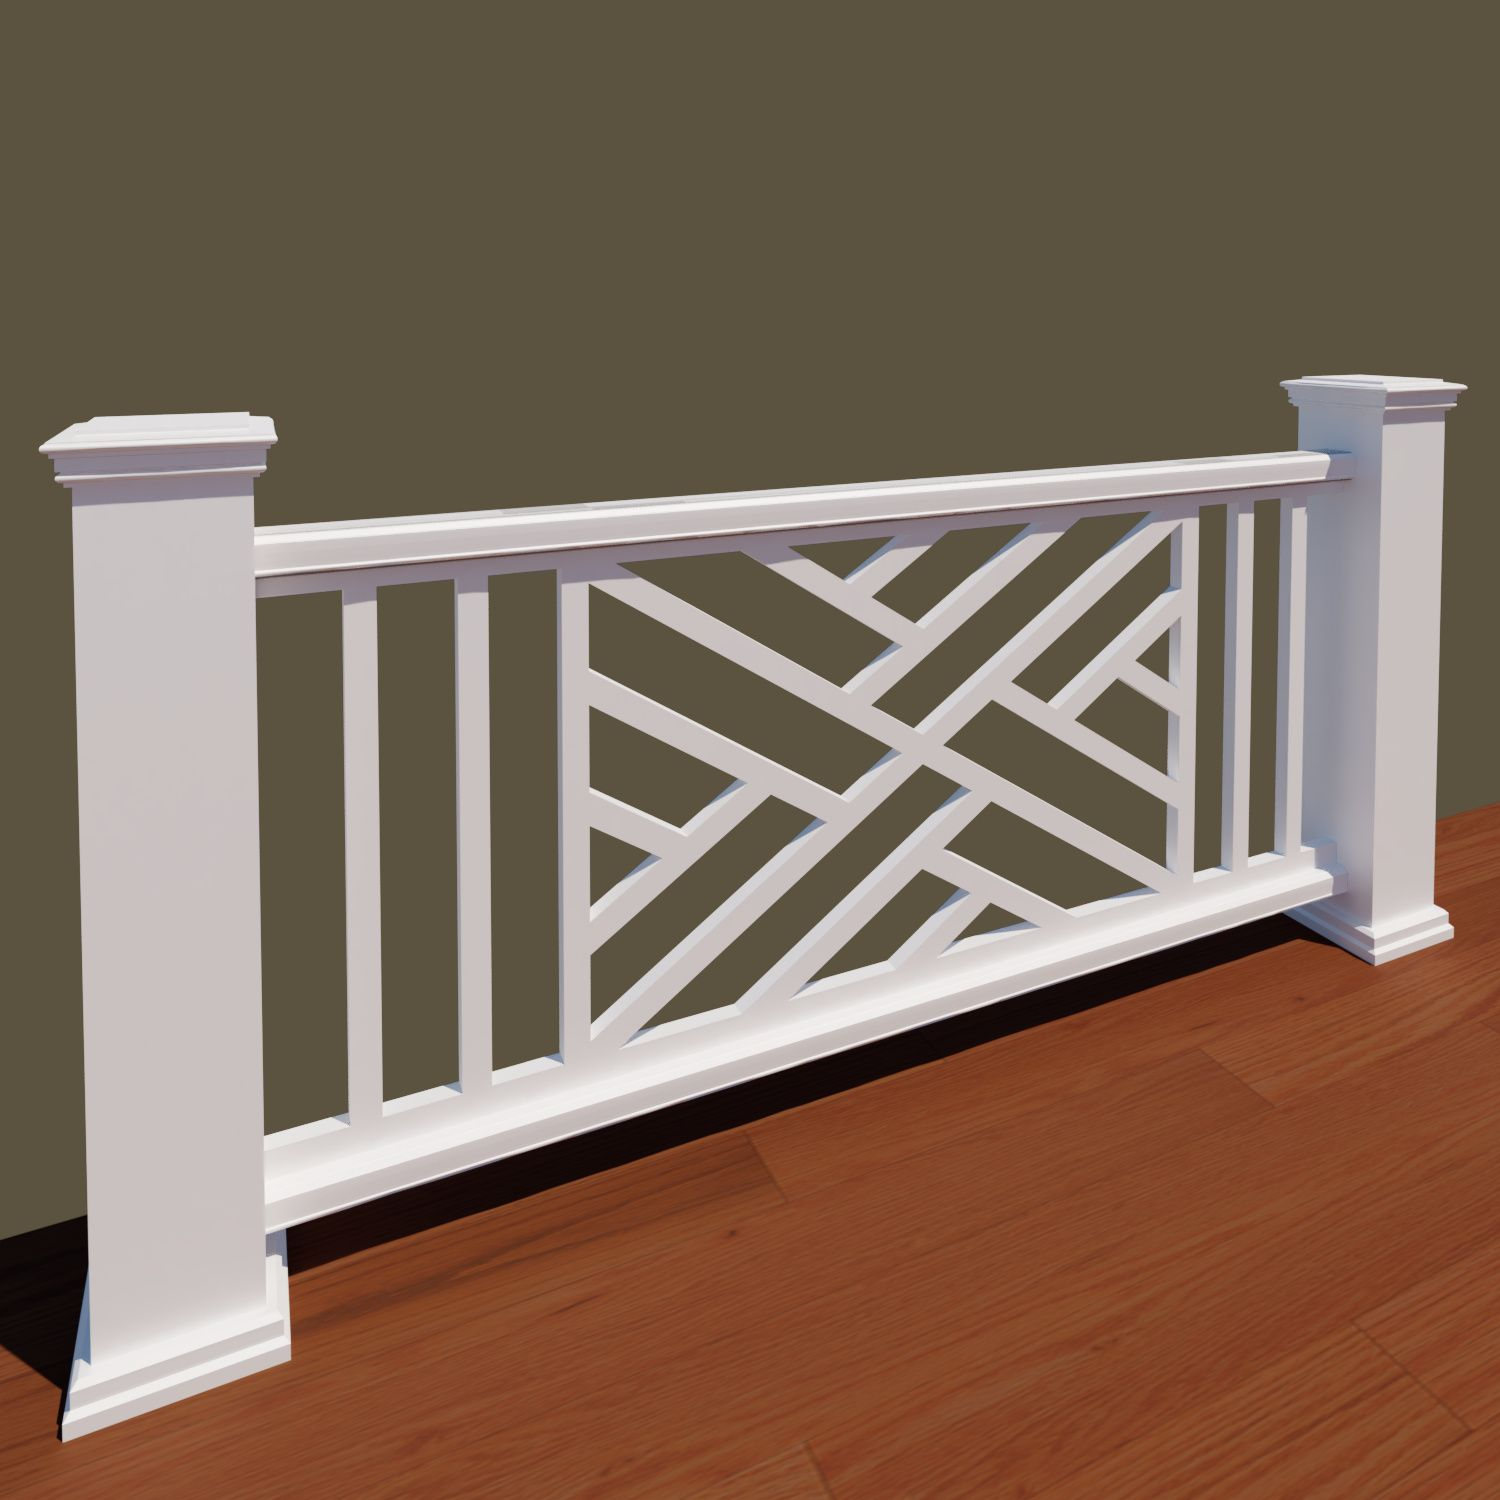 The Chippendale Panel in 2020 | Balcony railing design ...